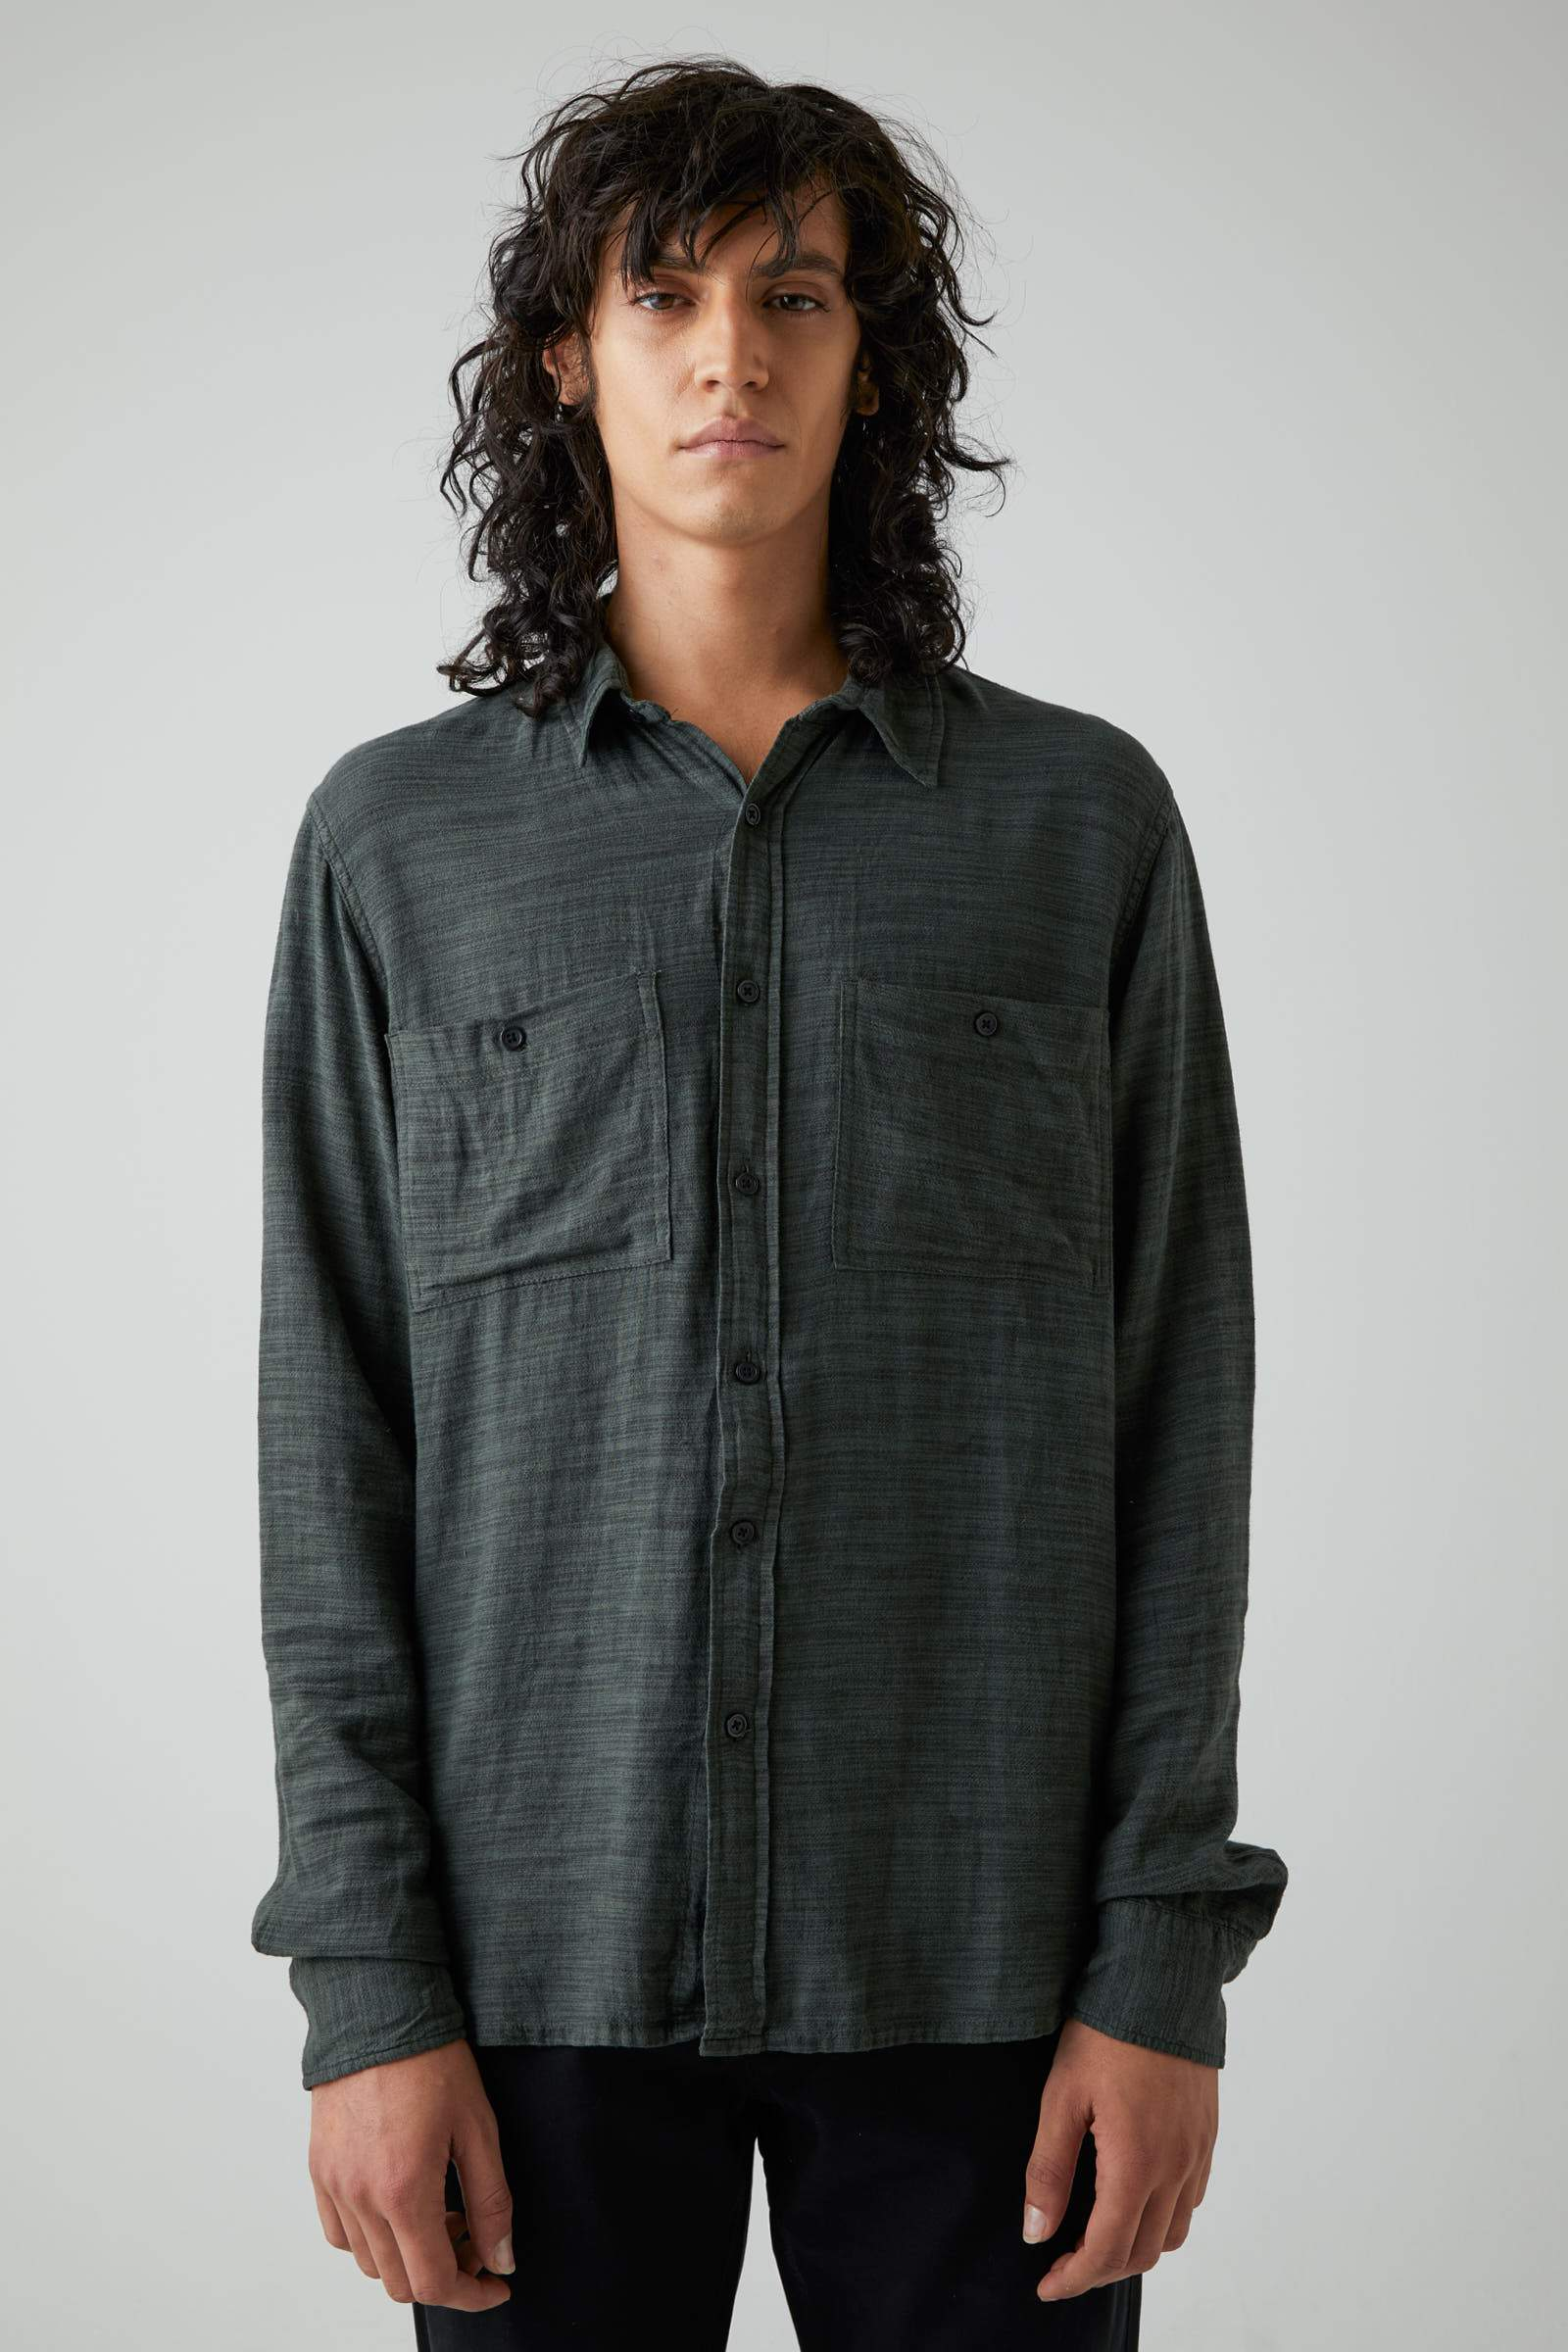 Waits Linen Ls Shirt - Dark Military